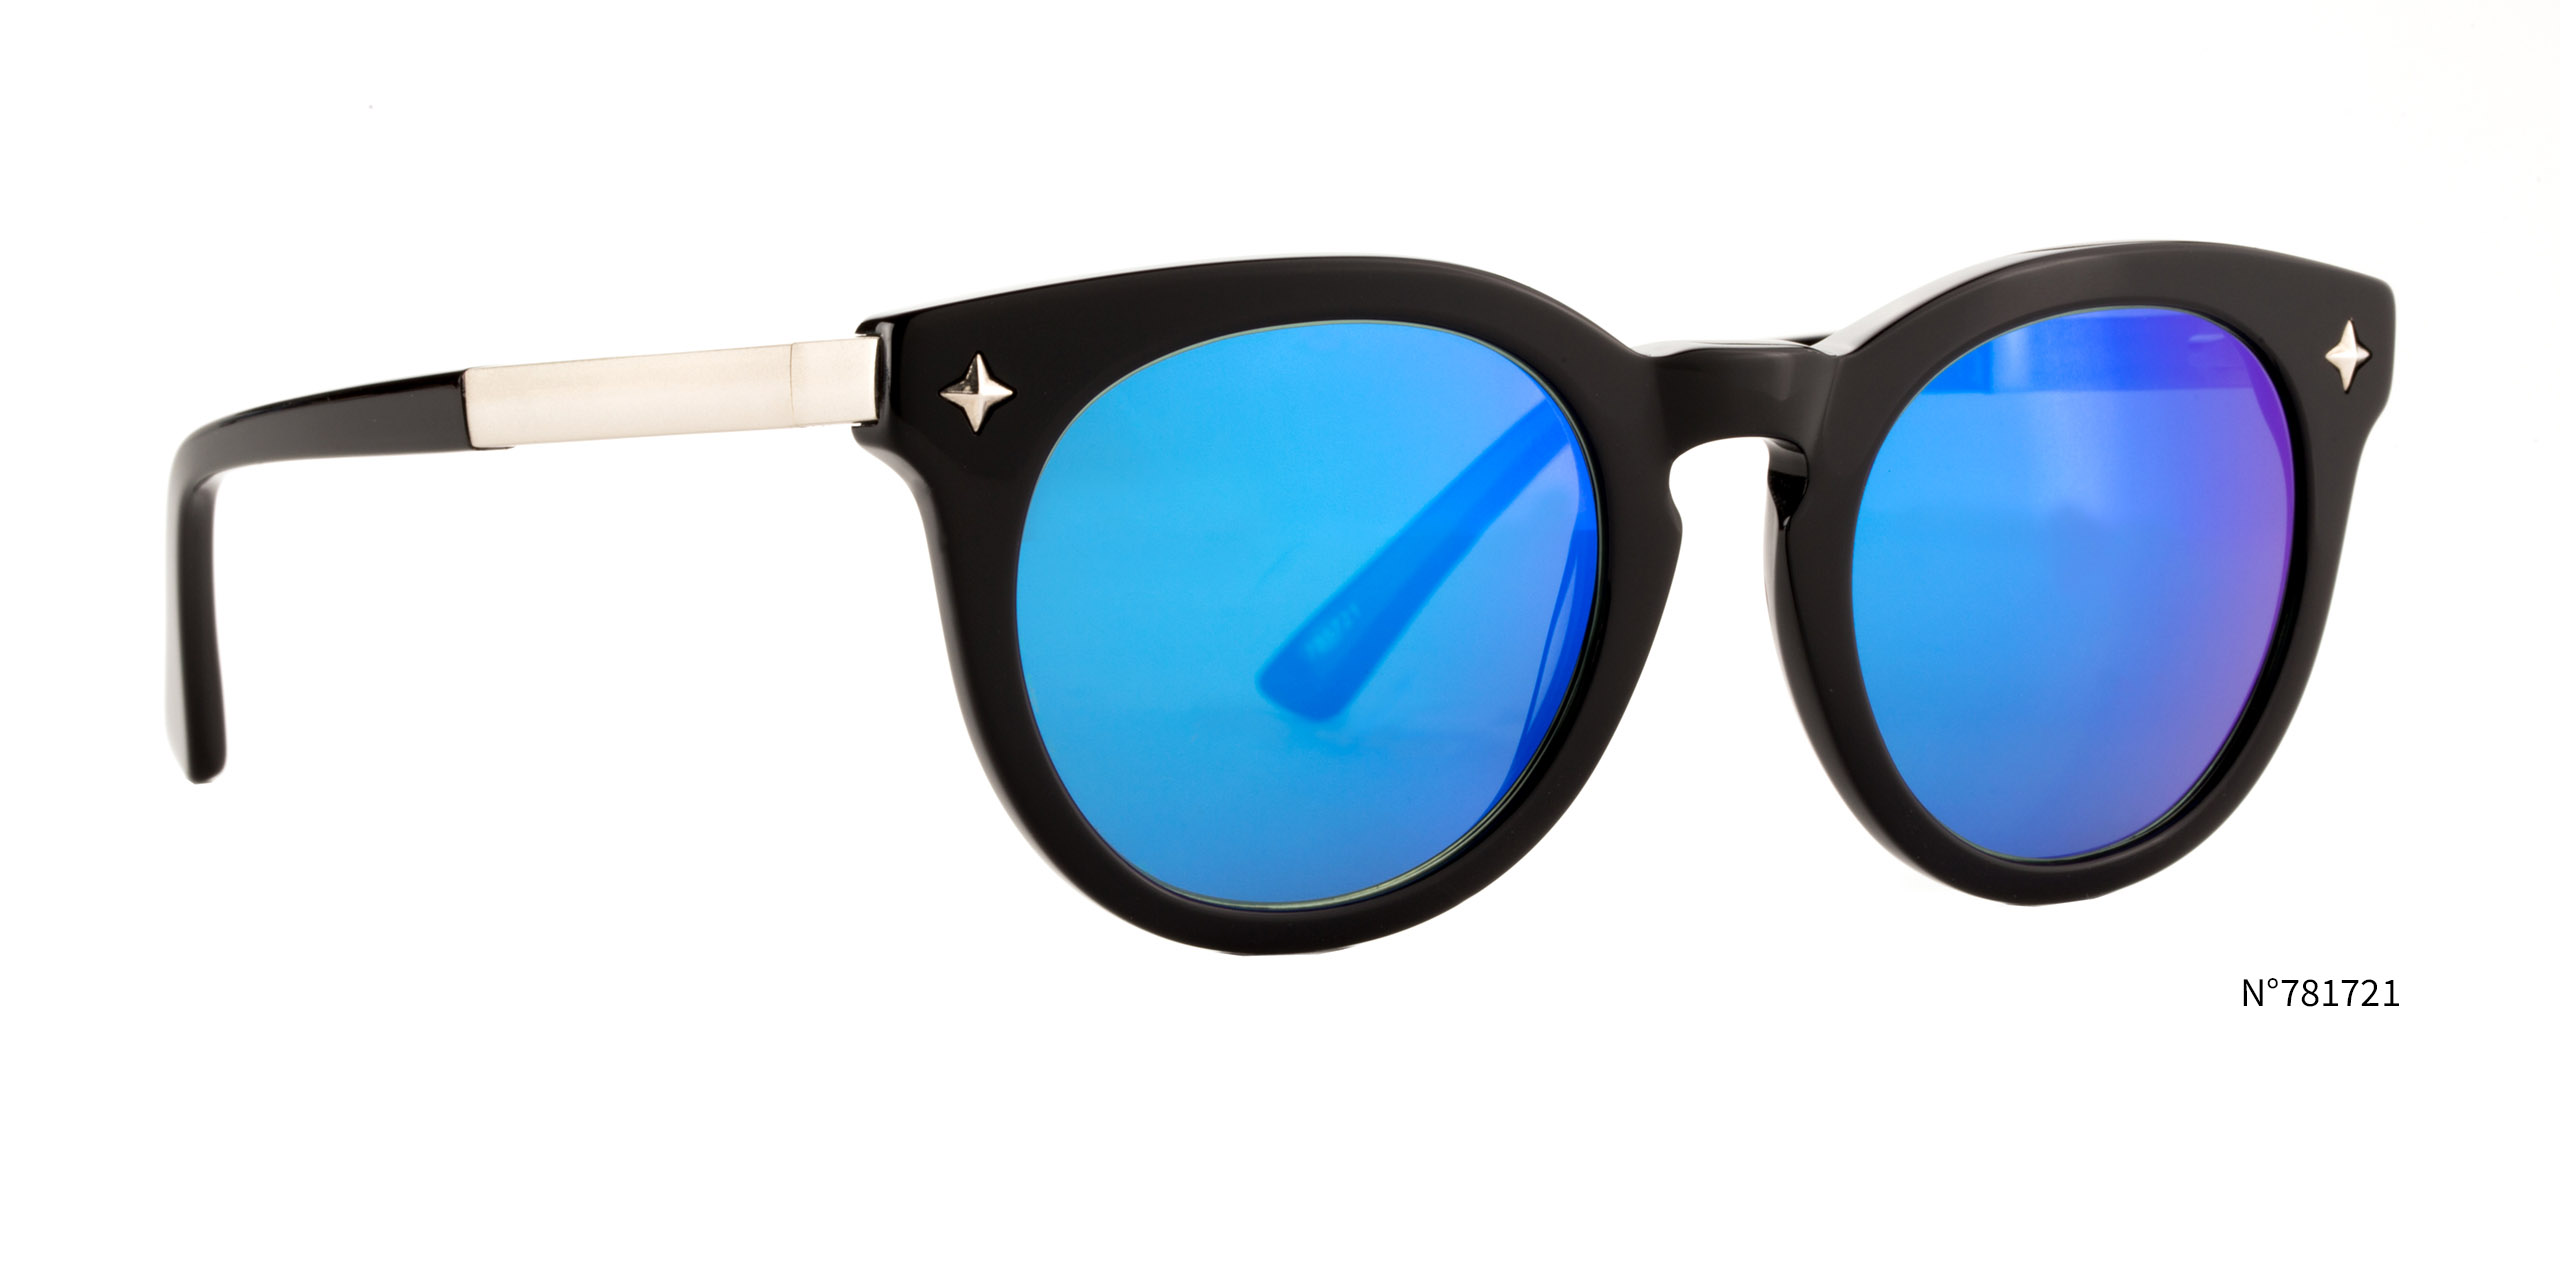 green-blue-mirrored-round-sunglasses-781721